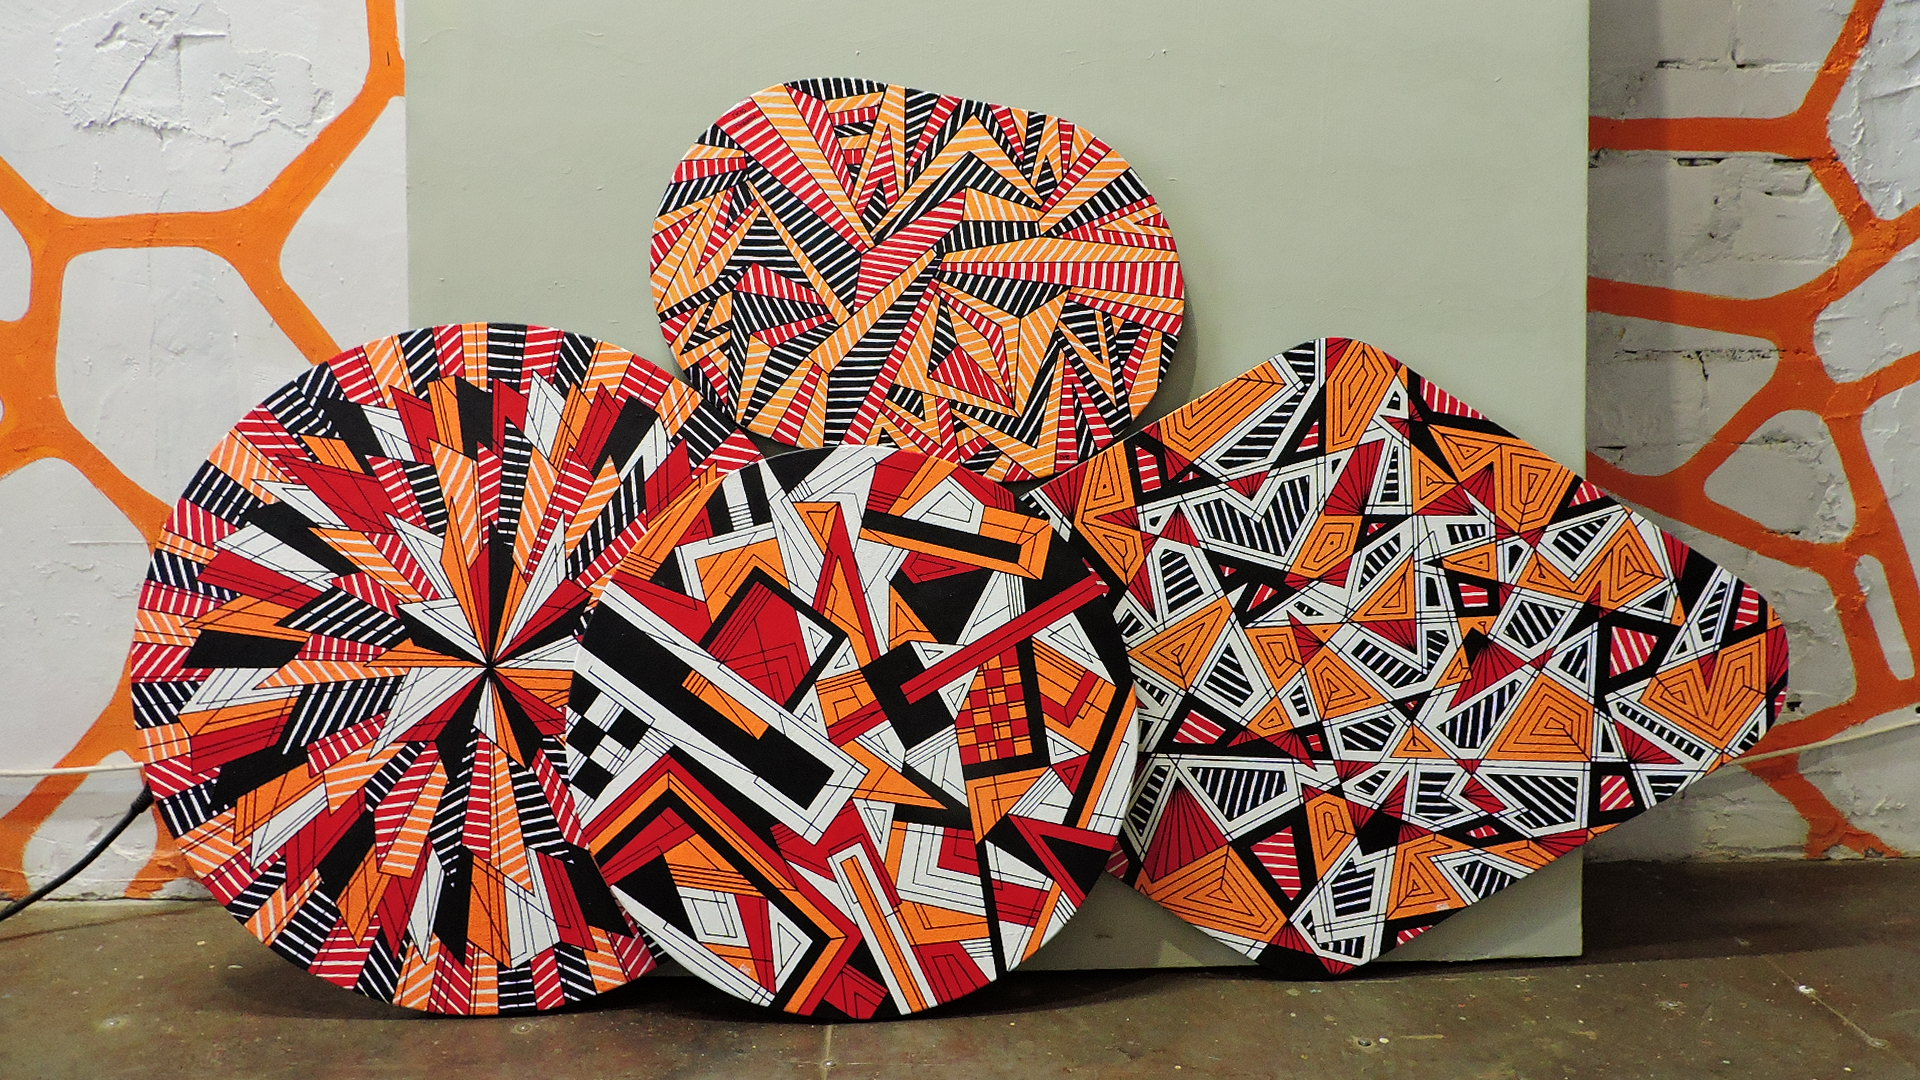 Four paintings of different geometric shapes, United by a common theme and color scheme